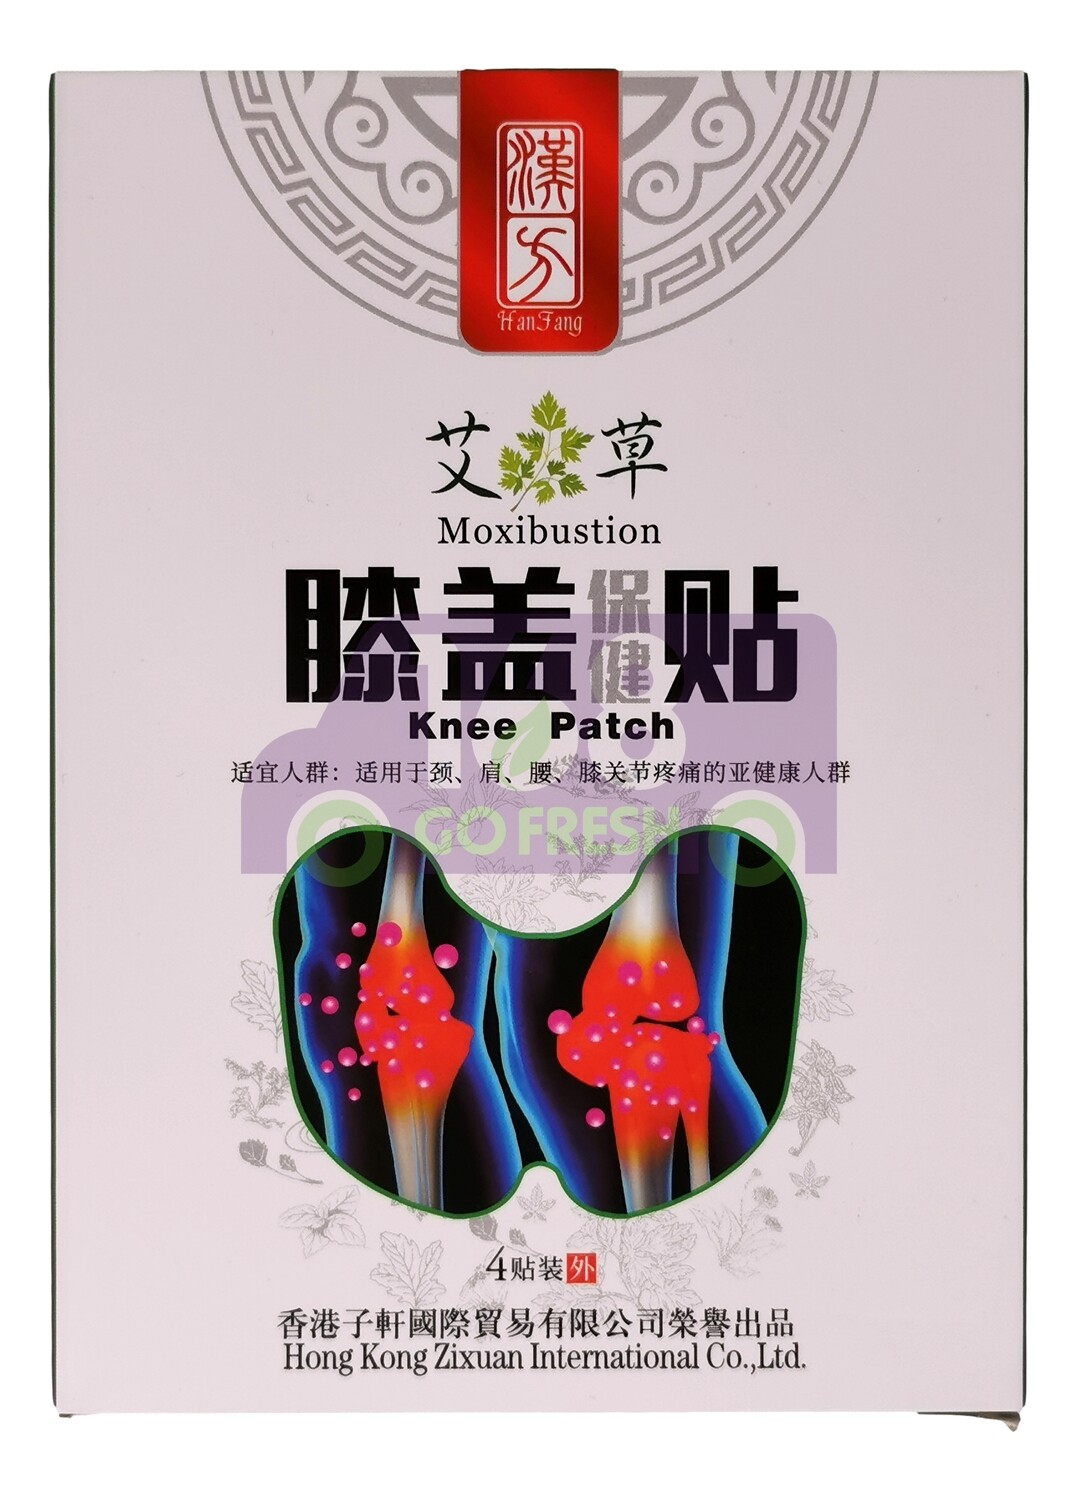 HANFANG Moxibustion Paste For Knee 4pcs 香港子轩汉方 颈椎保健贴4贴